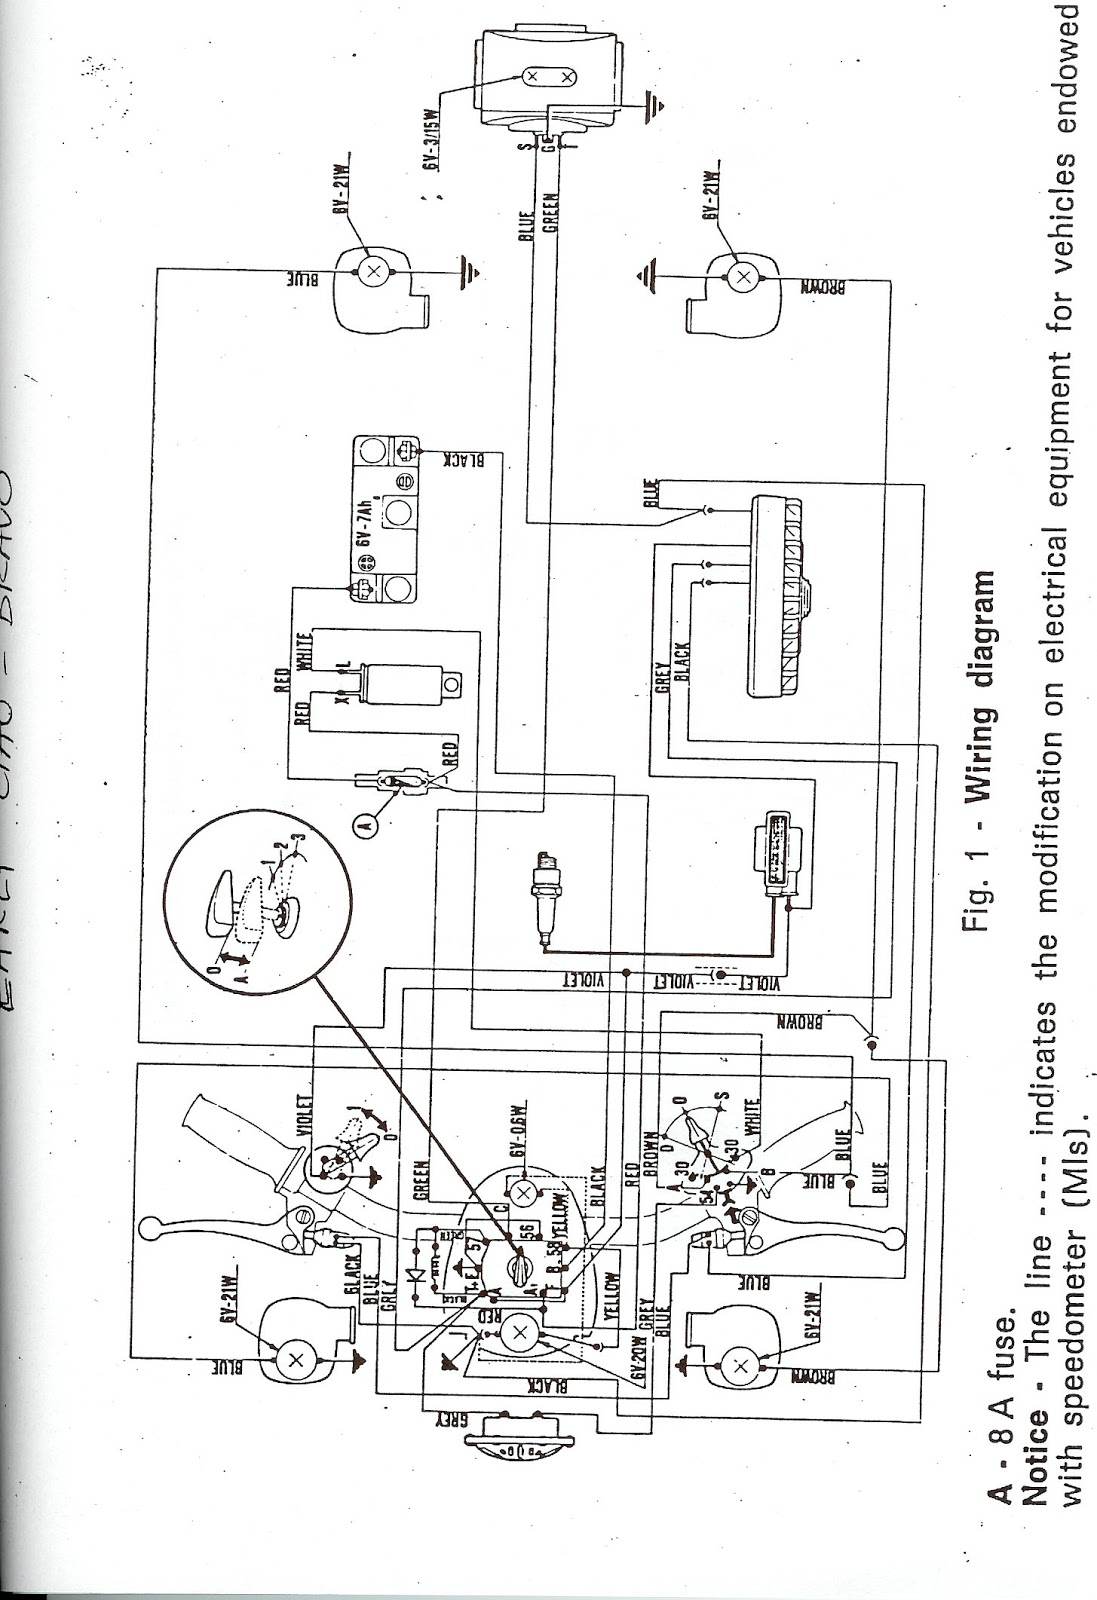 deadped vespa wiring in a nutshell rh deadped blogspot com Honda Accord Wiring Harness Diagram Schematic Diagram Honda